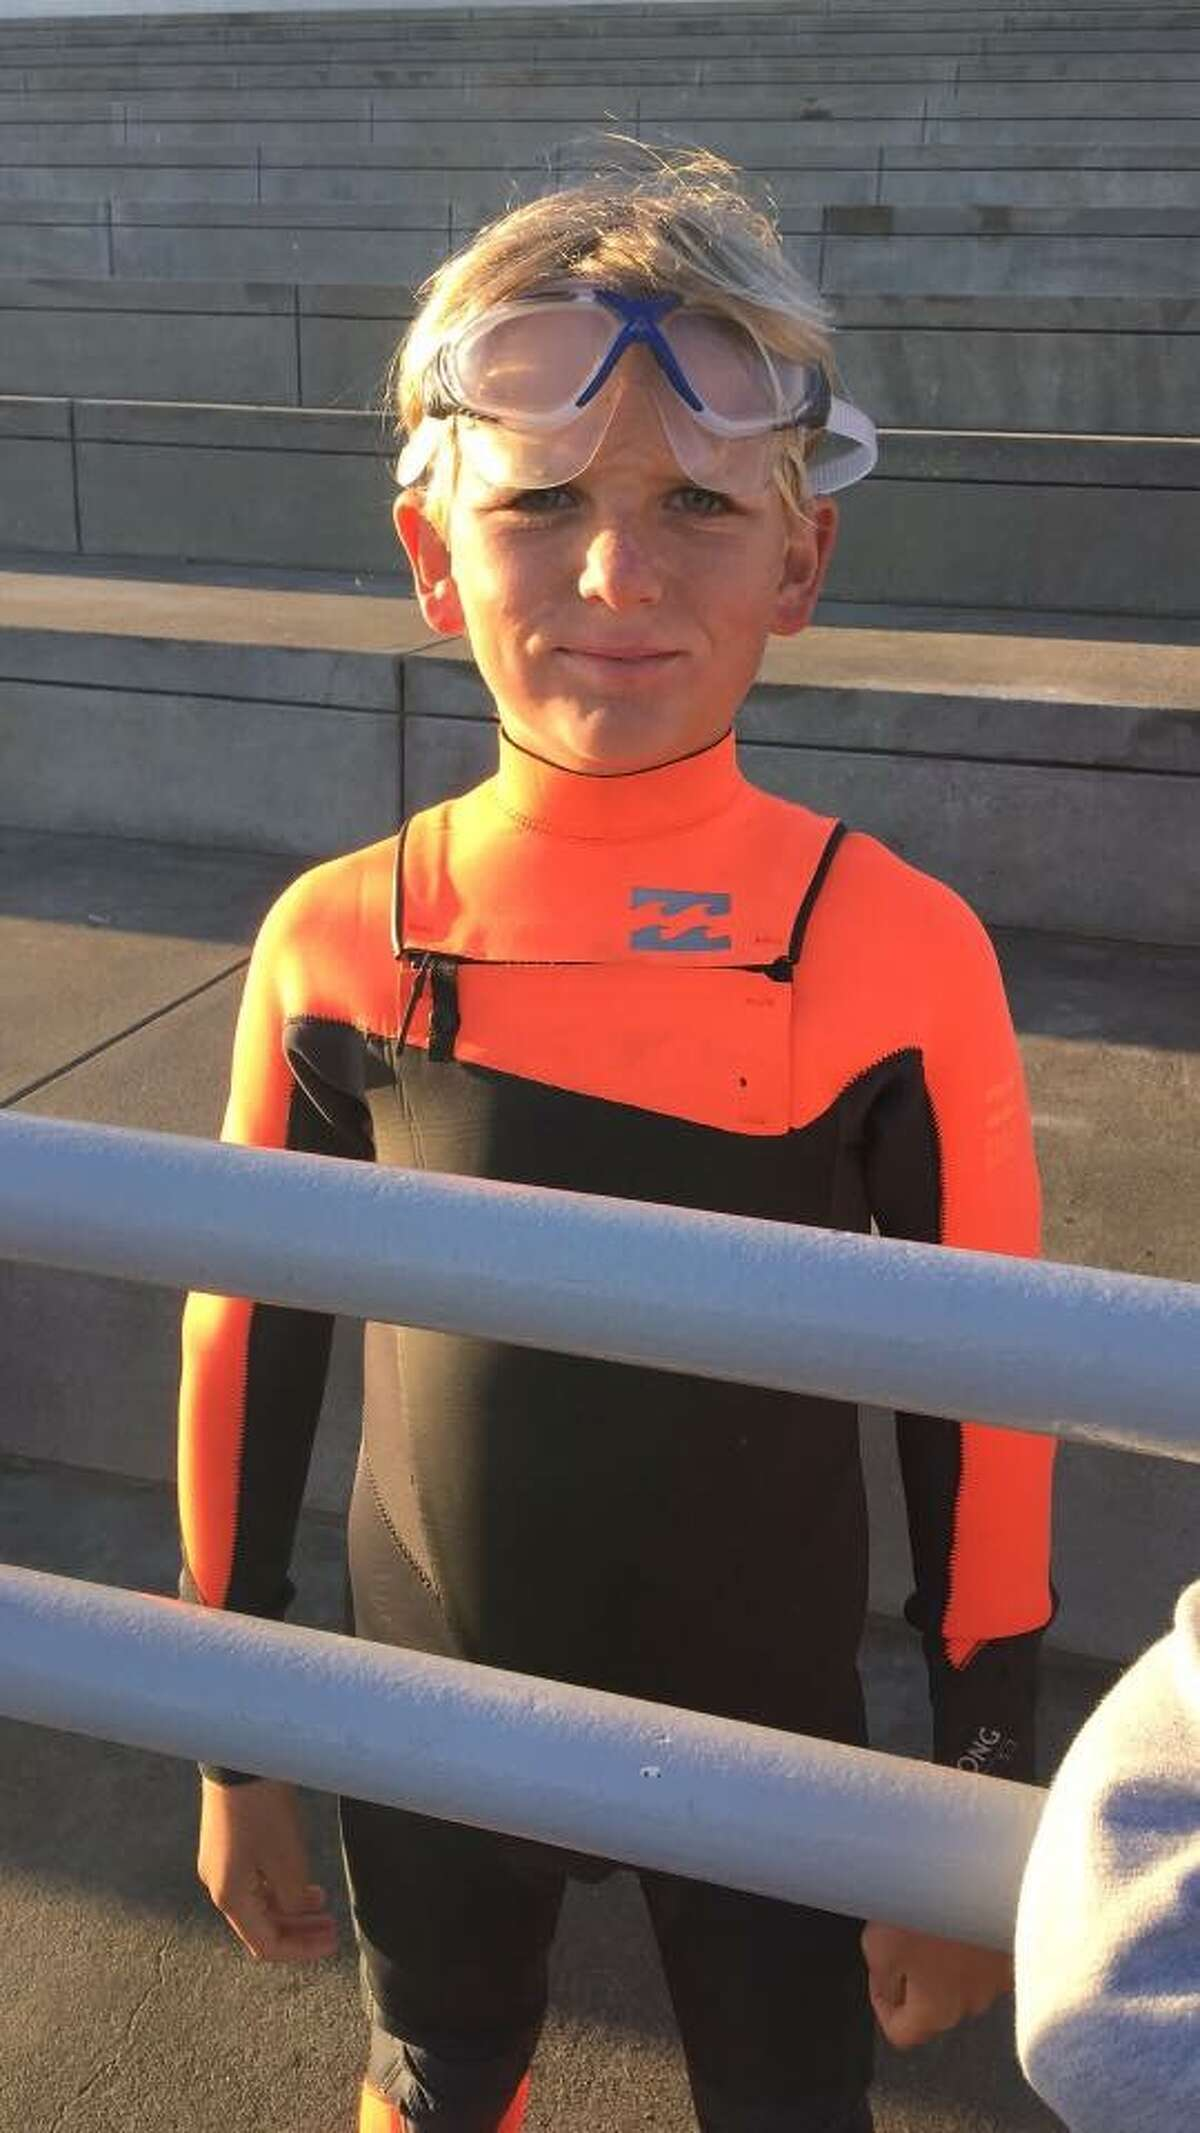 James Savage, 9, of Los Banos, Calif., became the youngest person to ever swim from the San Francisco shore to Alcatraz and back on June 14, 2016.